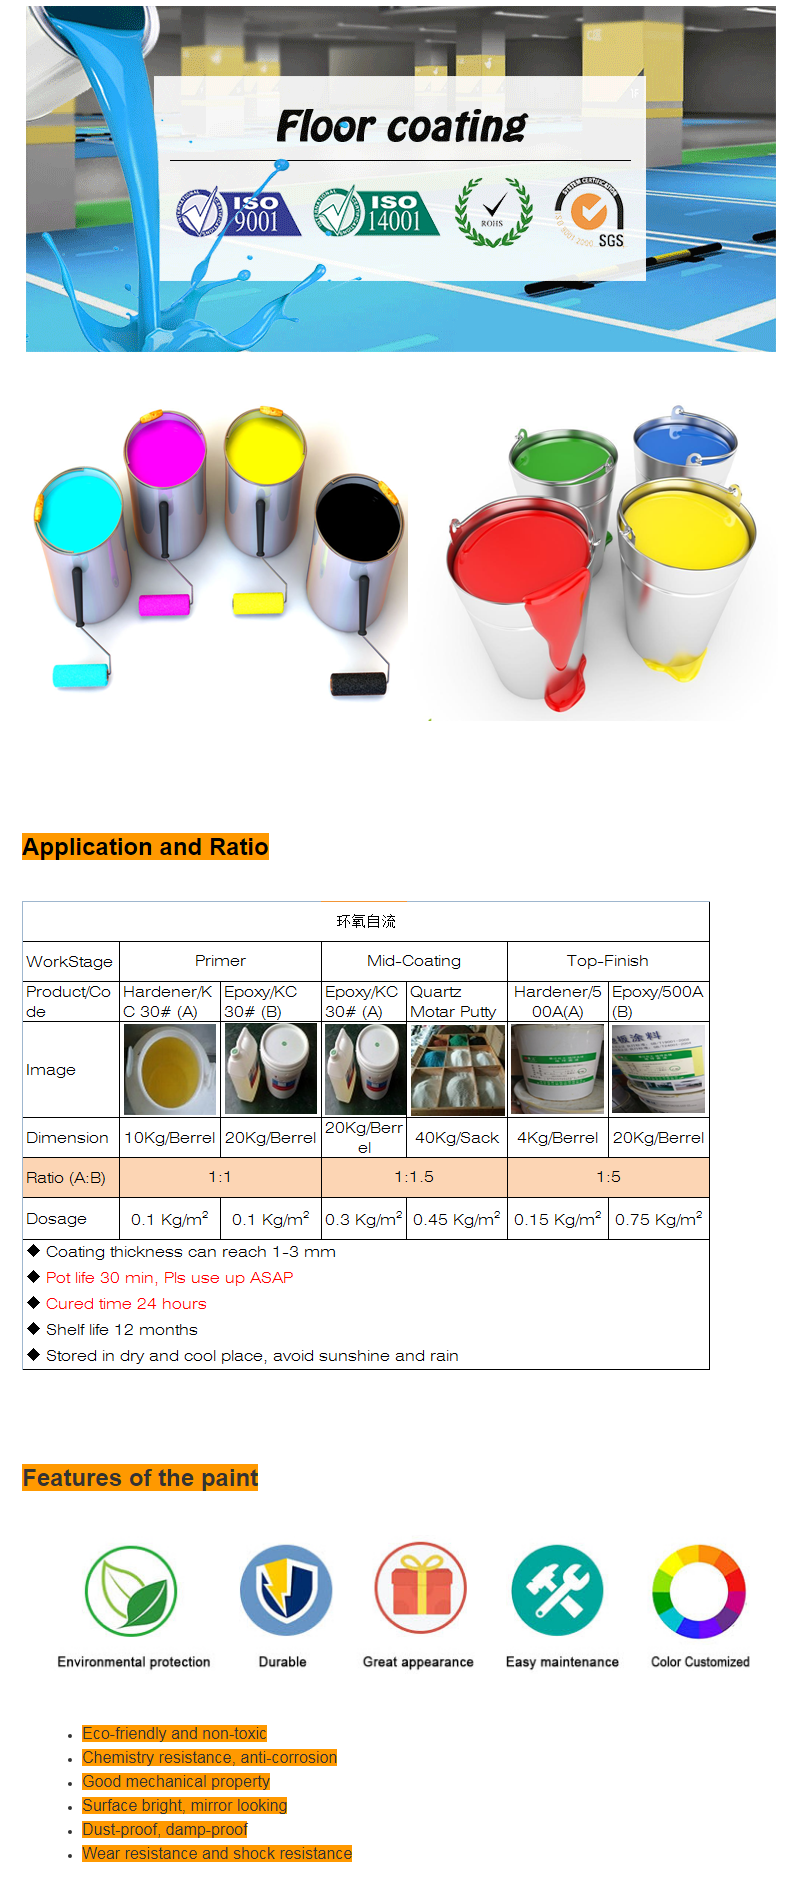 Epoxy Resin Floor Paint Asian Products Used Self Leveling Screed - Buy  Epoxy Resin Floor Paint,Self Leveling Screed,Asian Paints Products Product  on